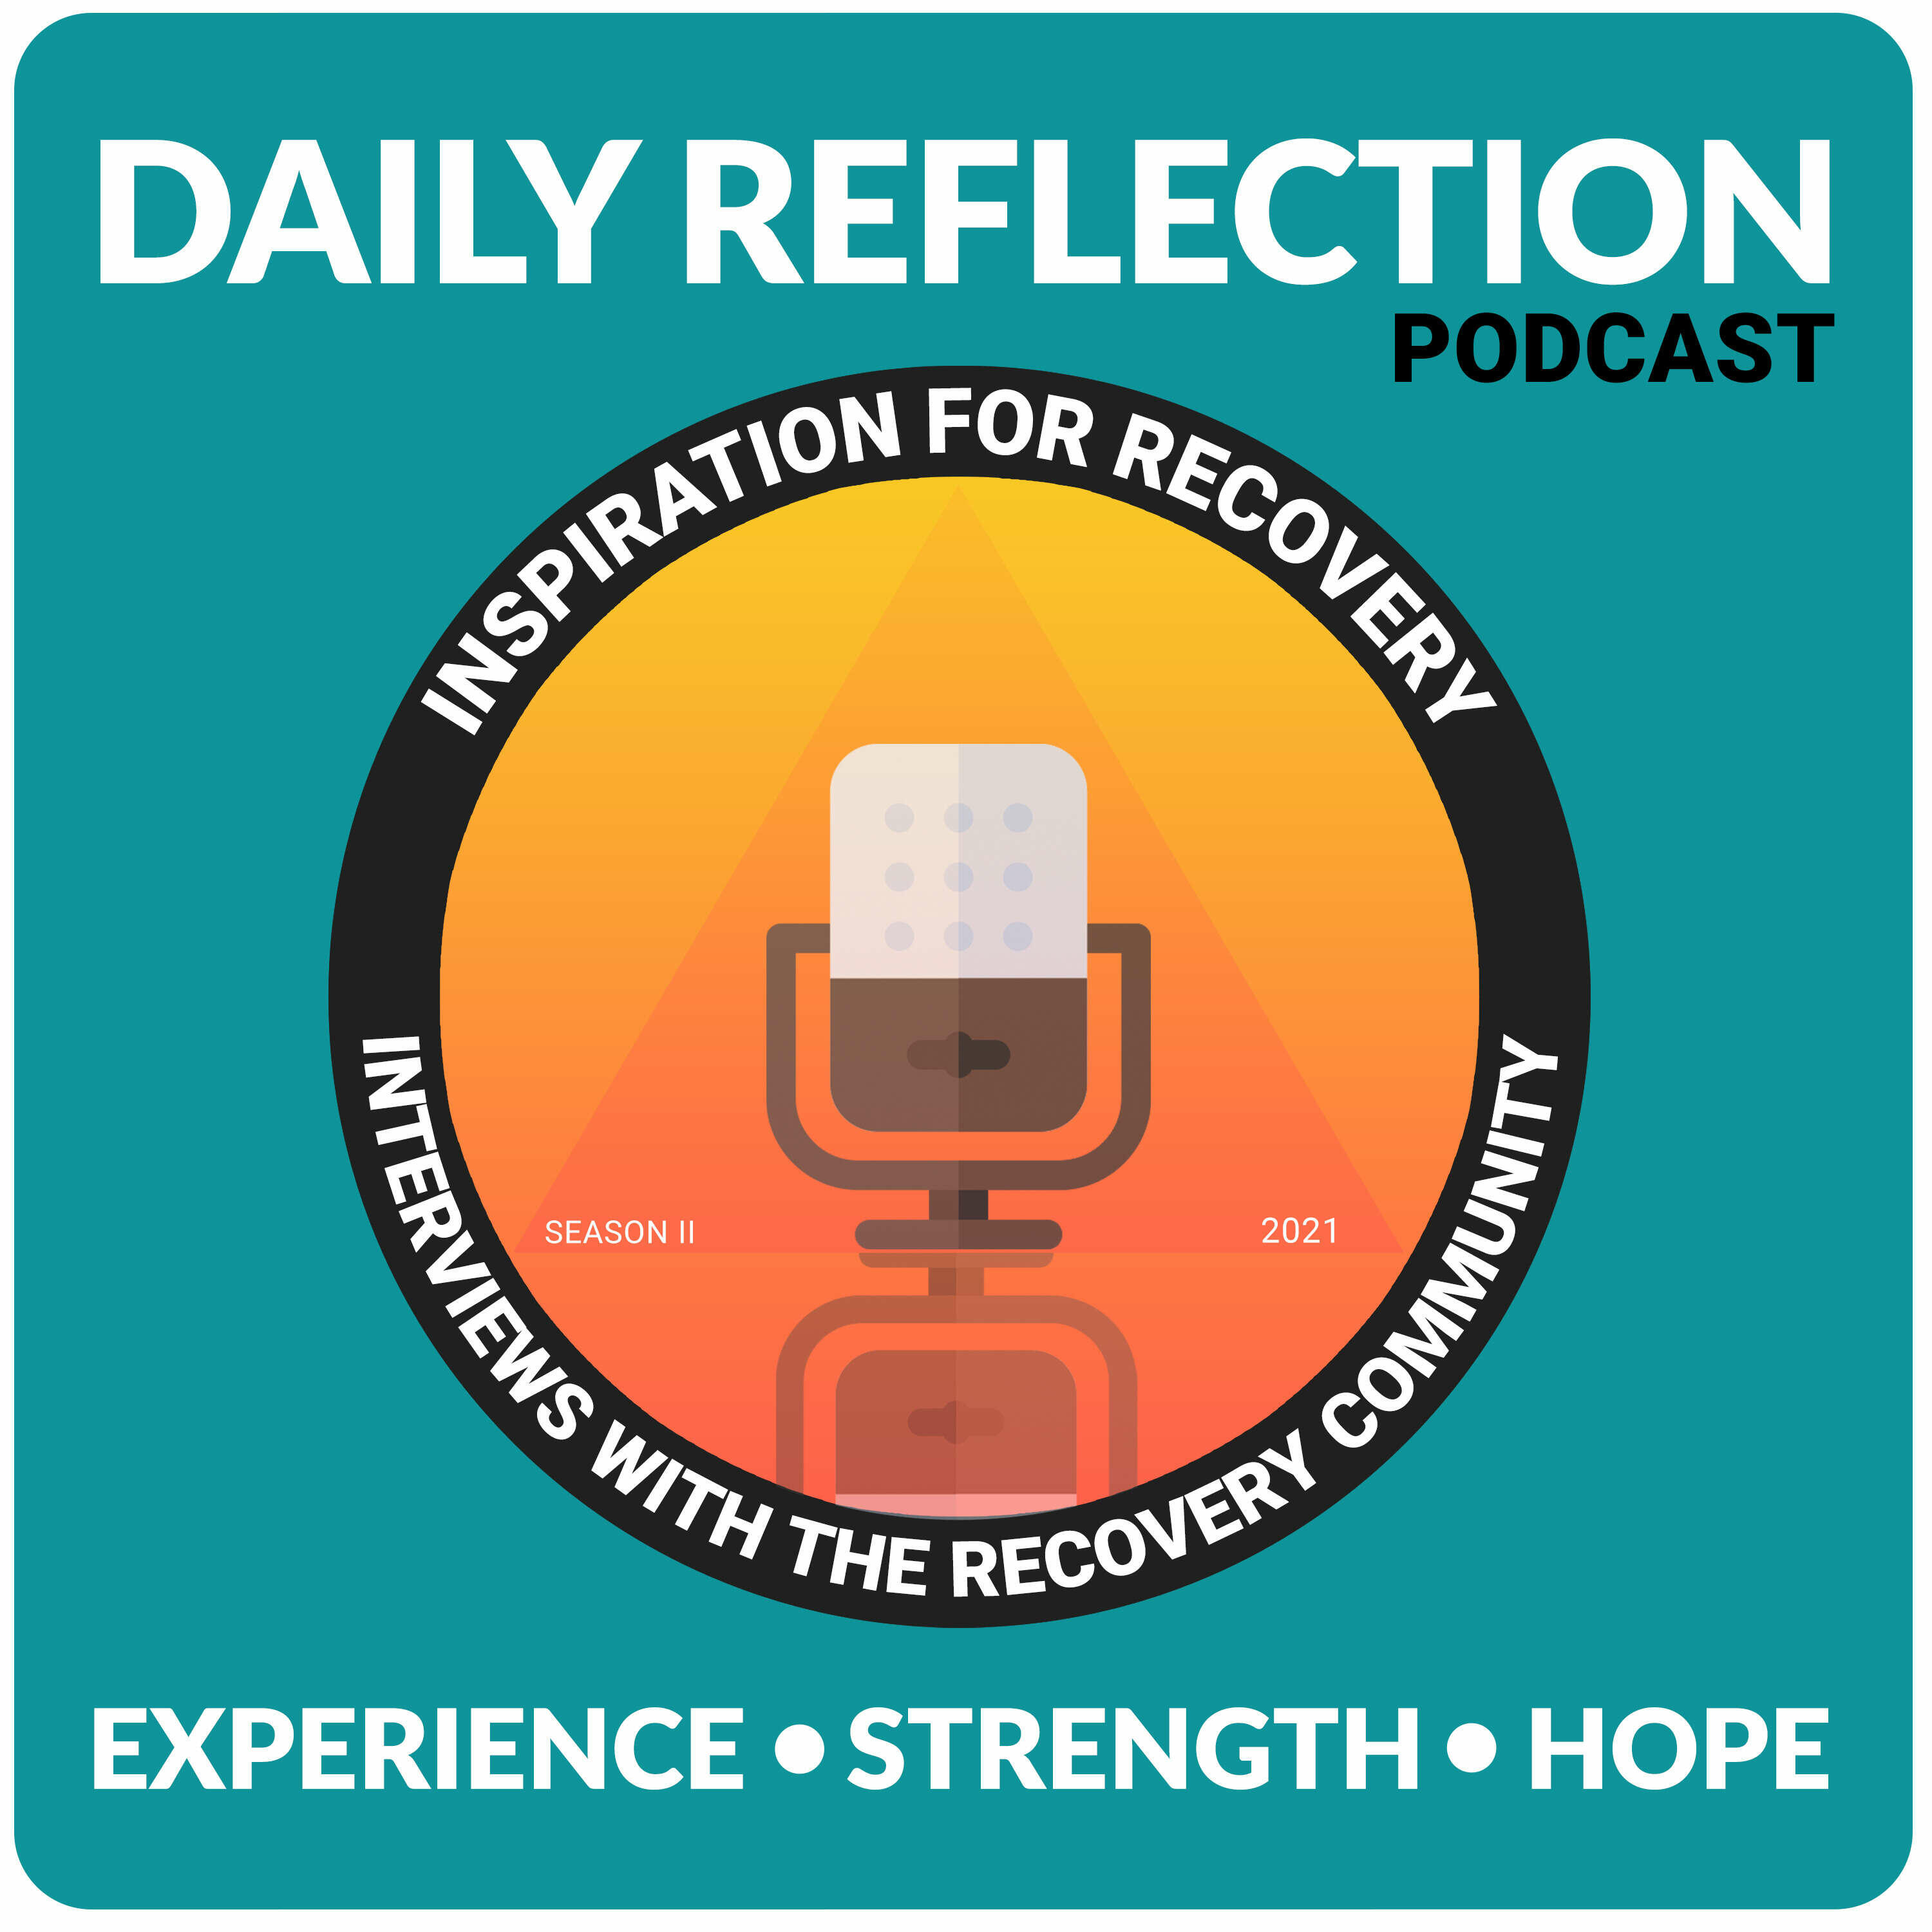 Daily Reflection Podcast